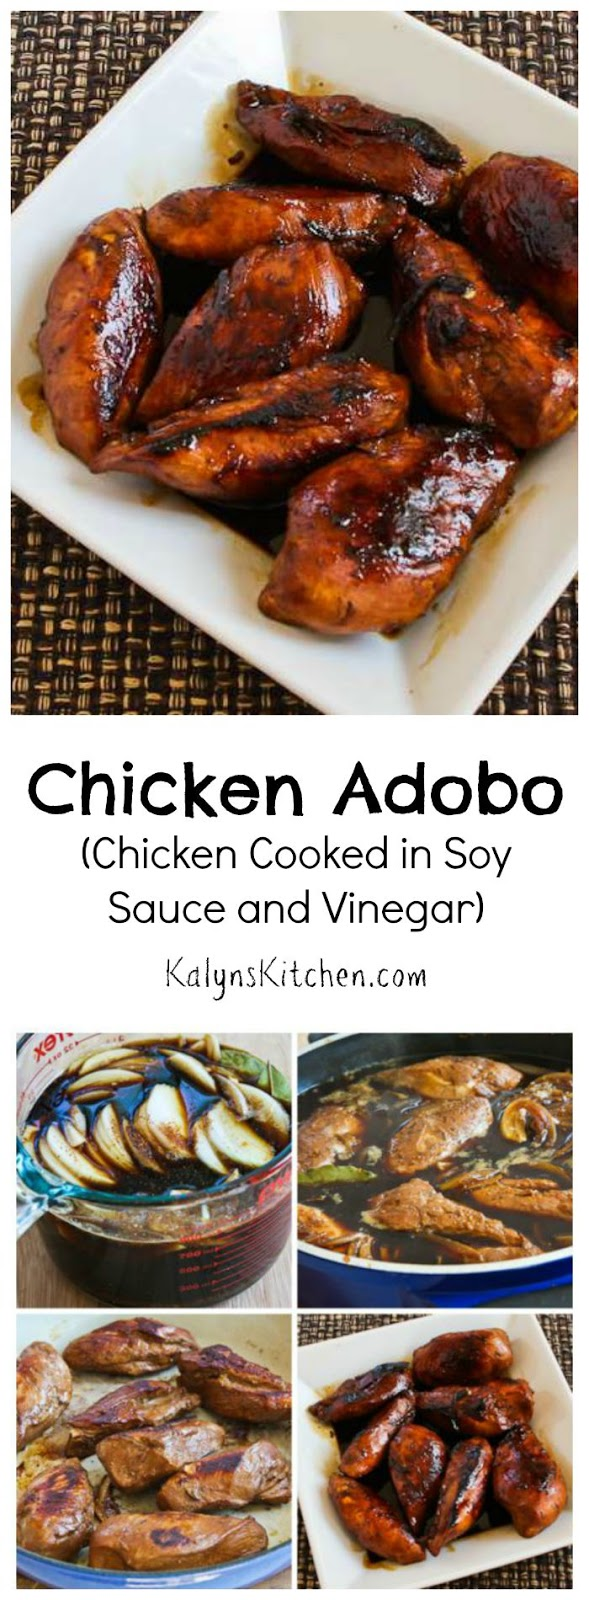 ... ®: Filipino Chicken Adobo (Chicken Cooked in Soy Sauce and Vinegar